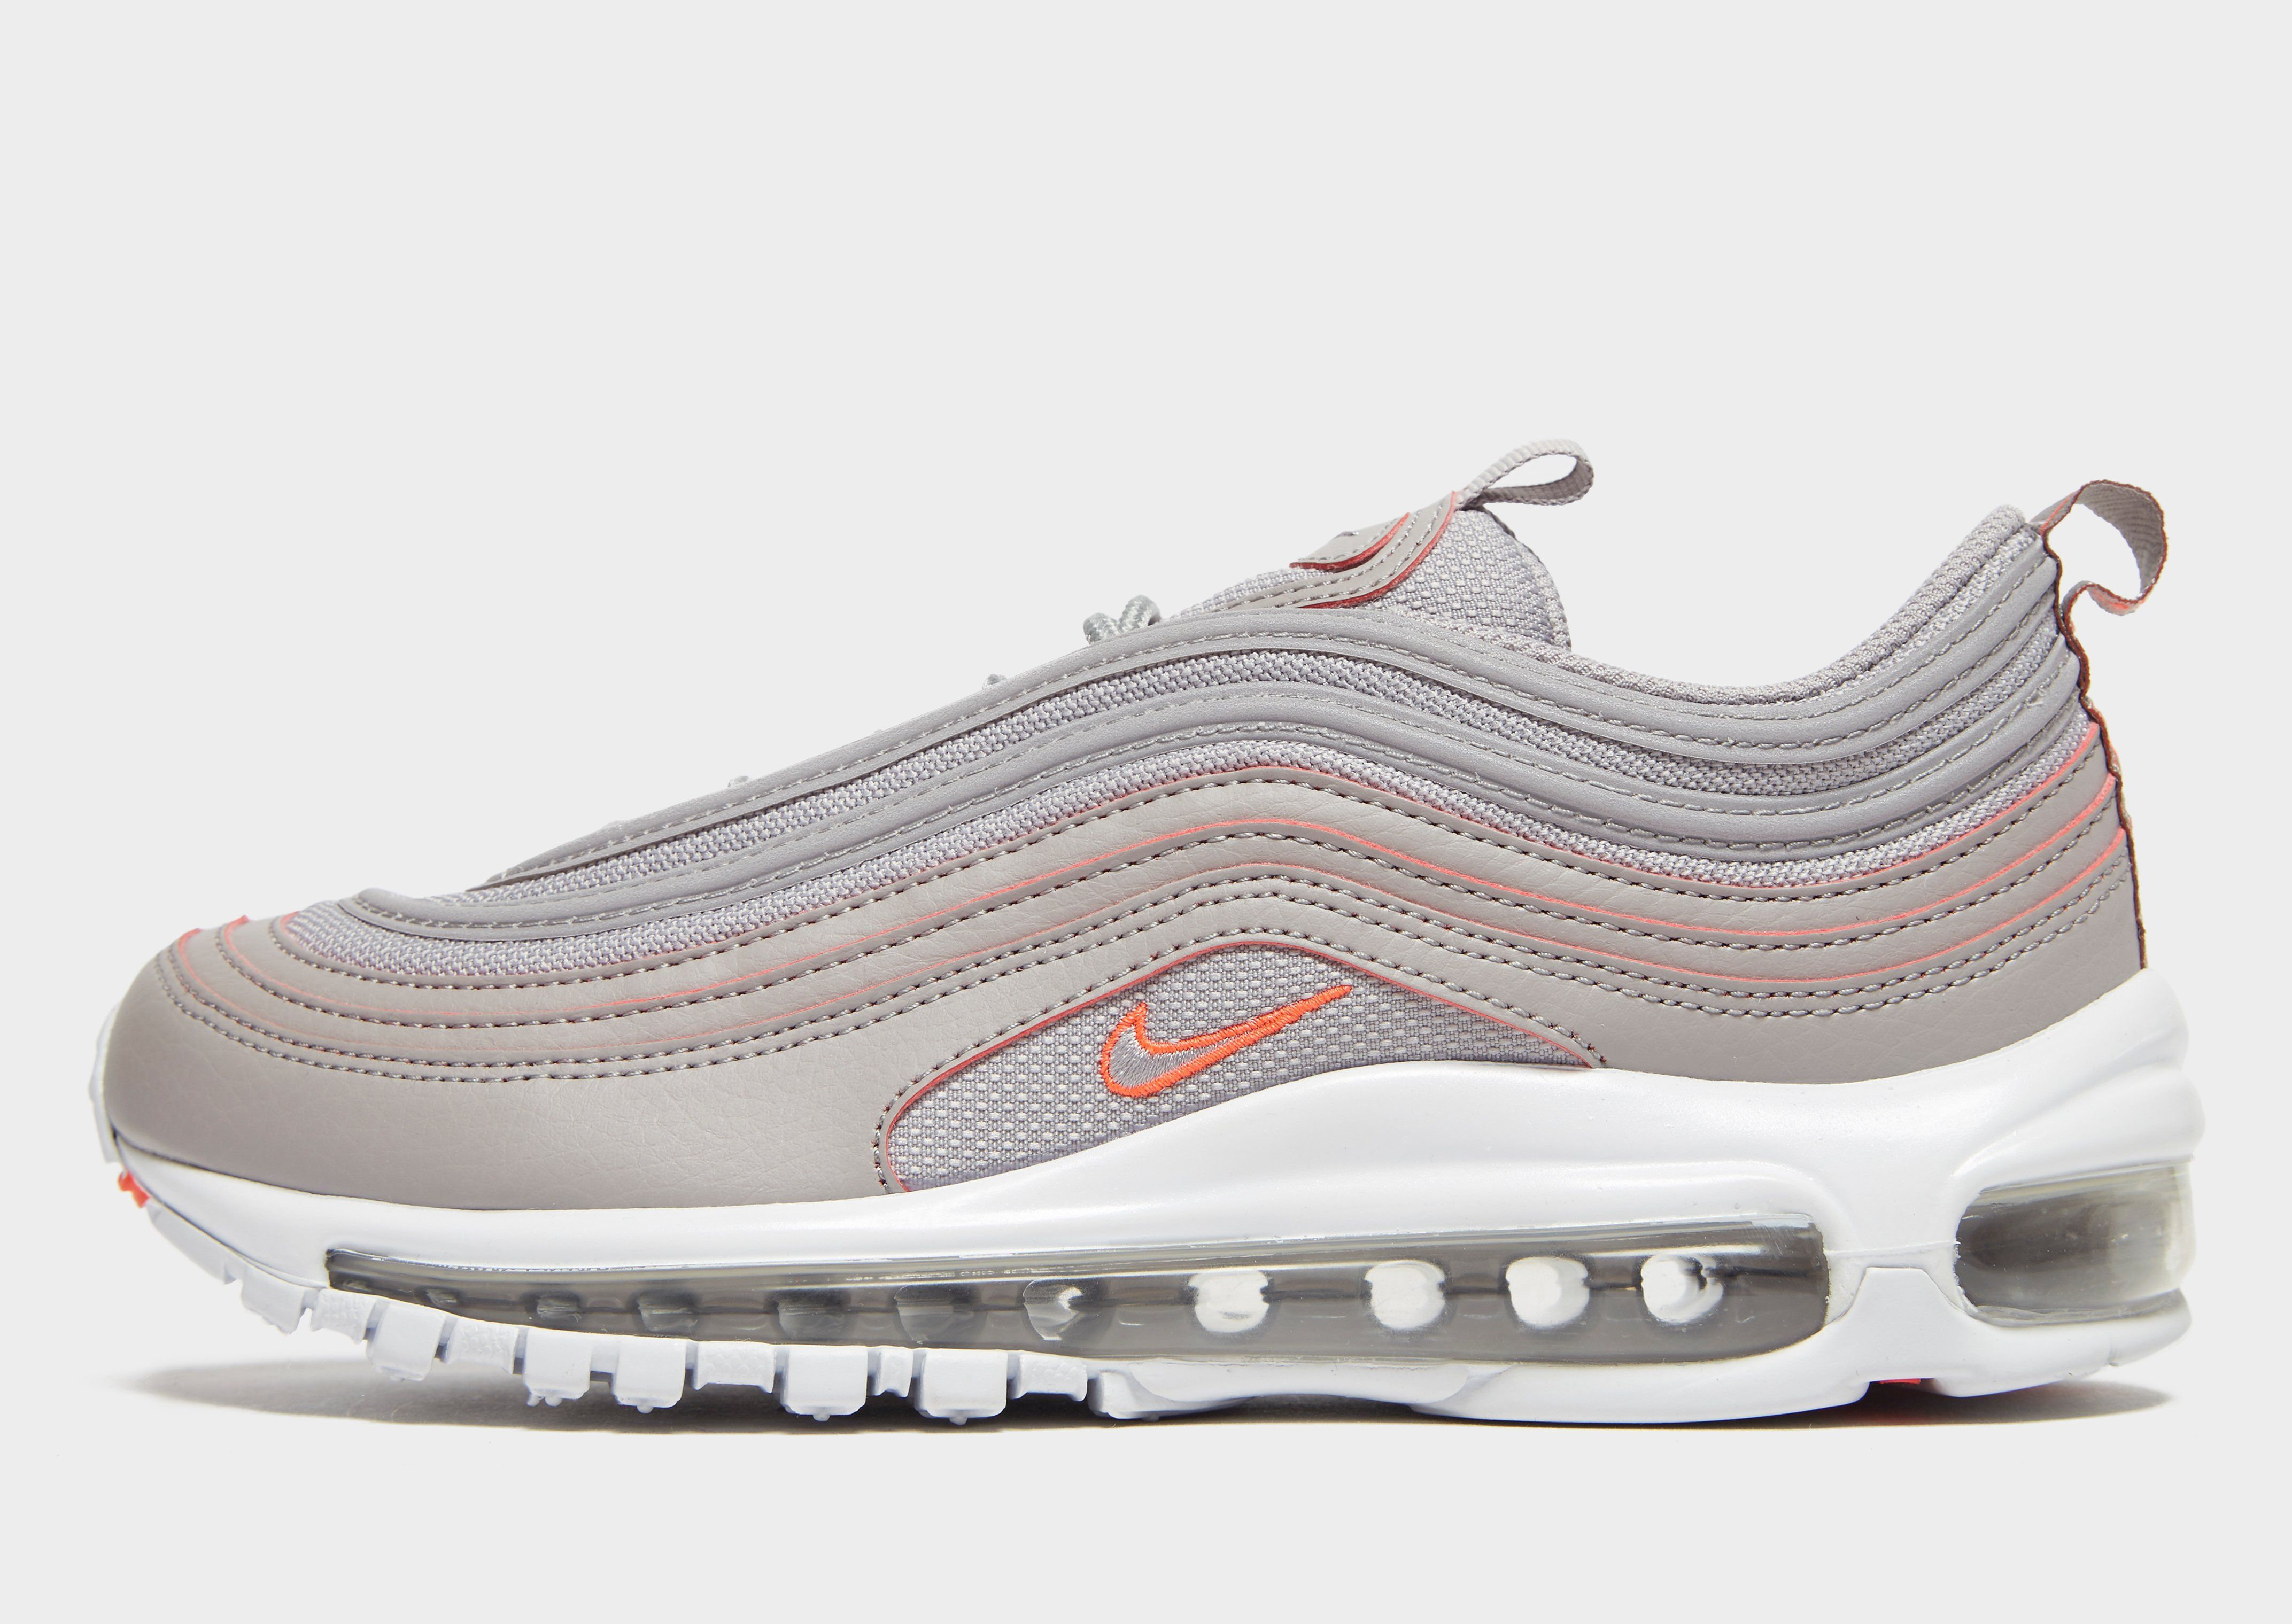 competitive price f24b5 99ee4 Nike Air Max 97 Premium Women's Shoe | JD Sports